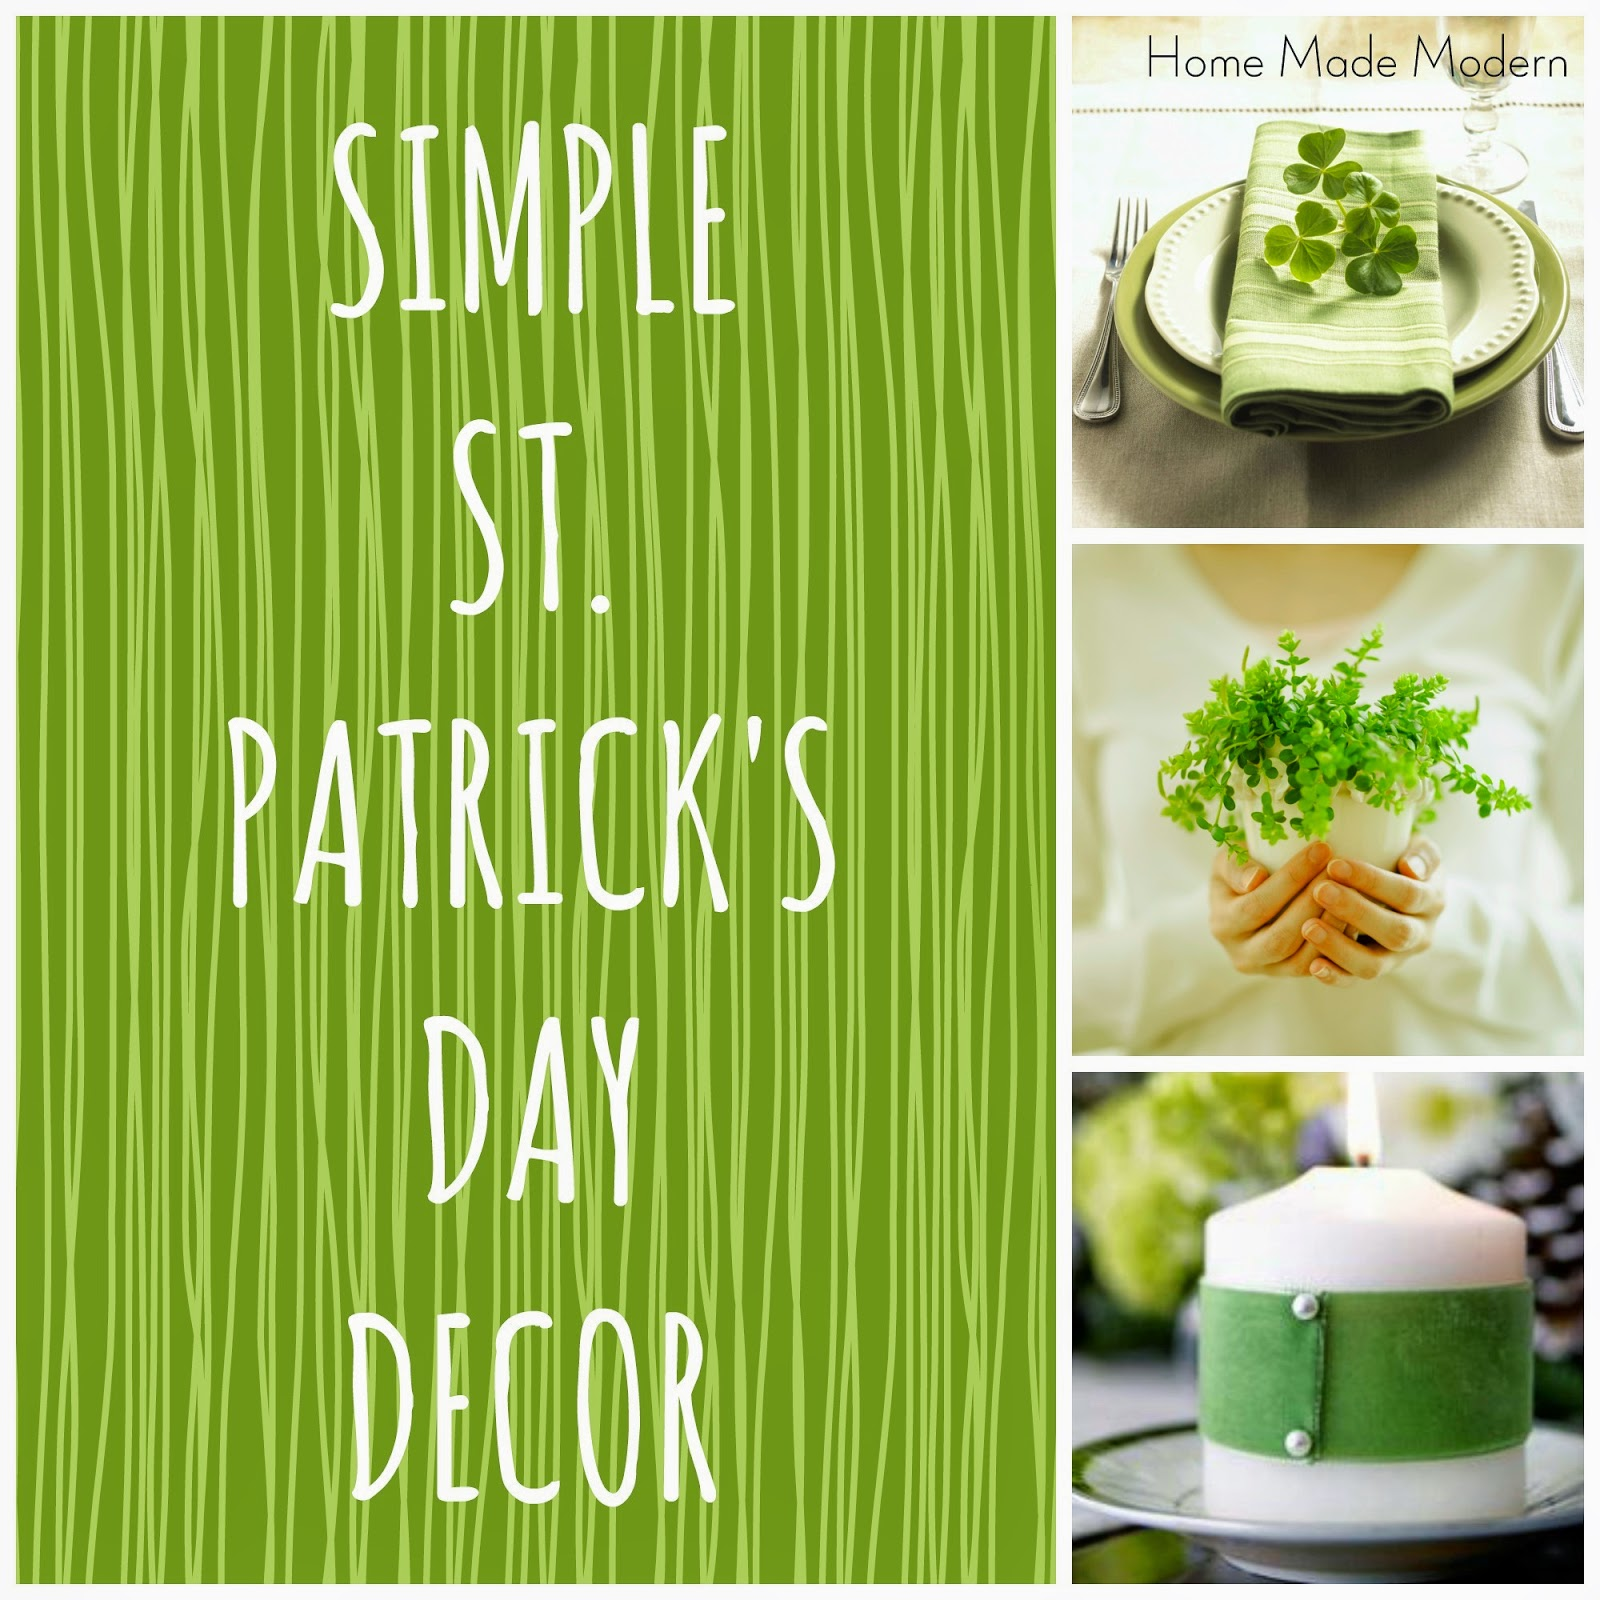 Simple St Patricks Day Decor Home Made Modern